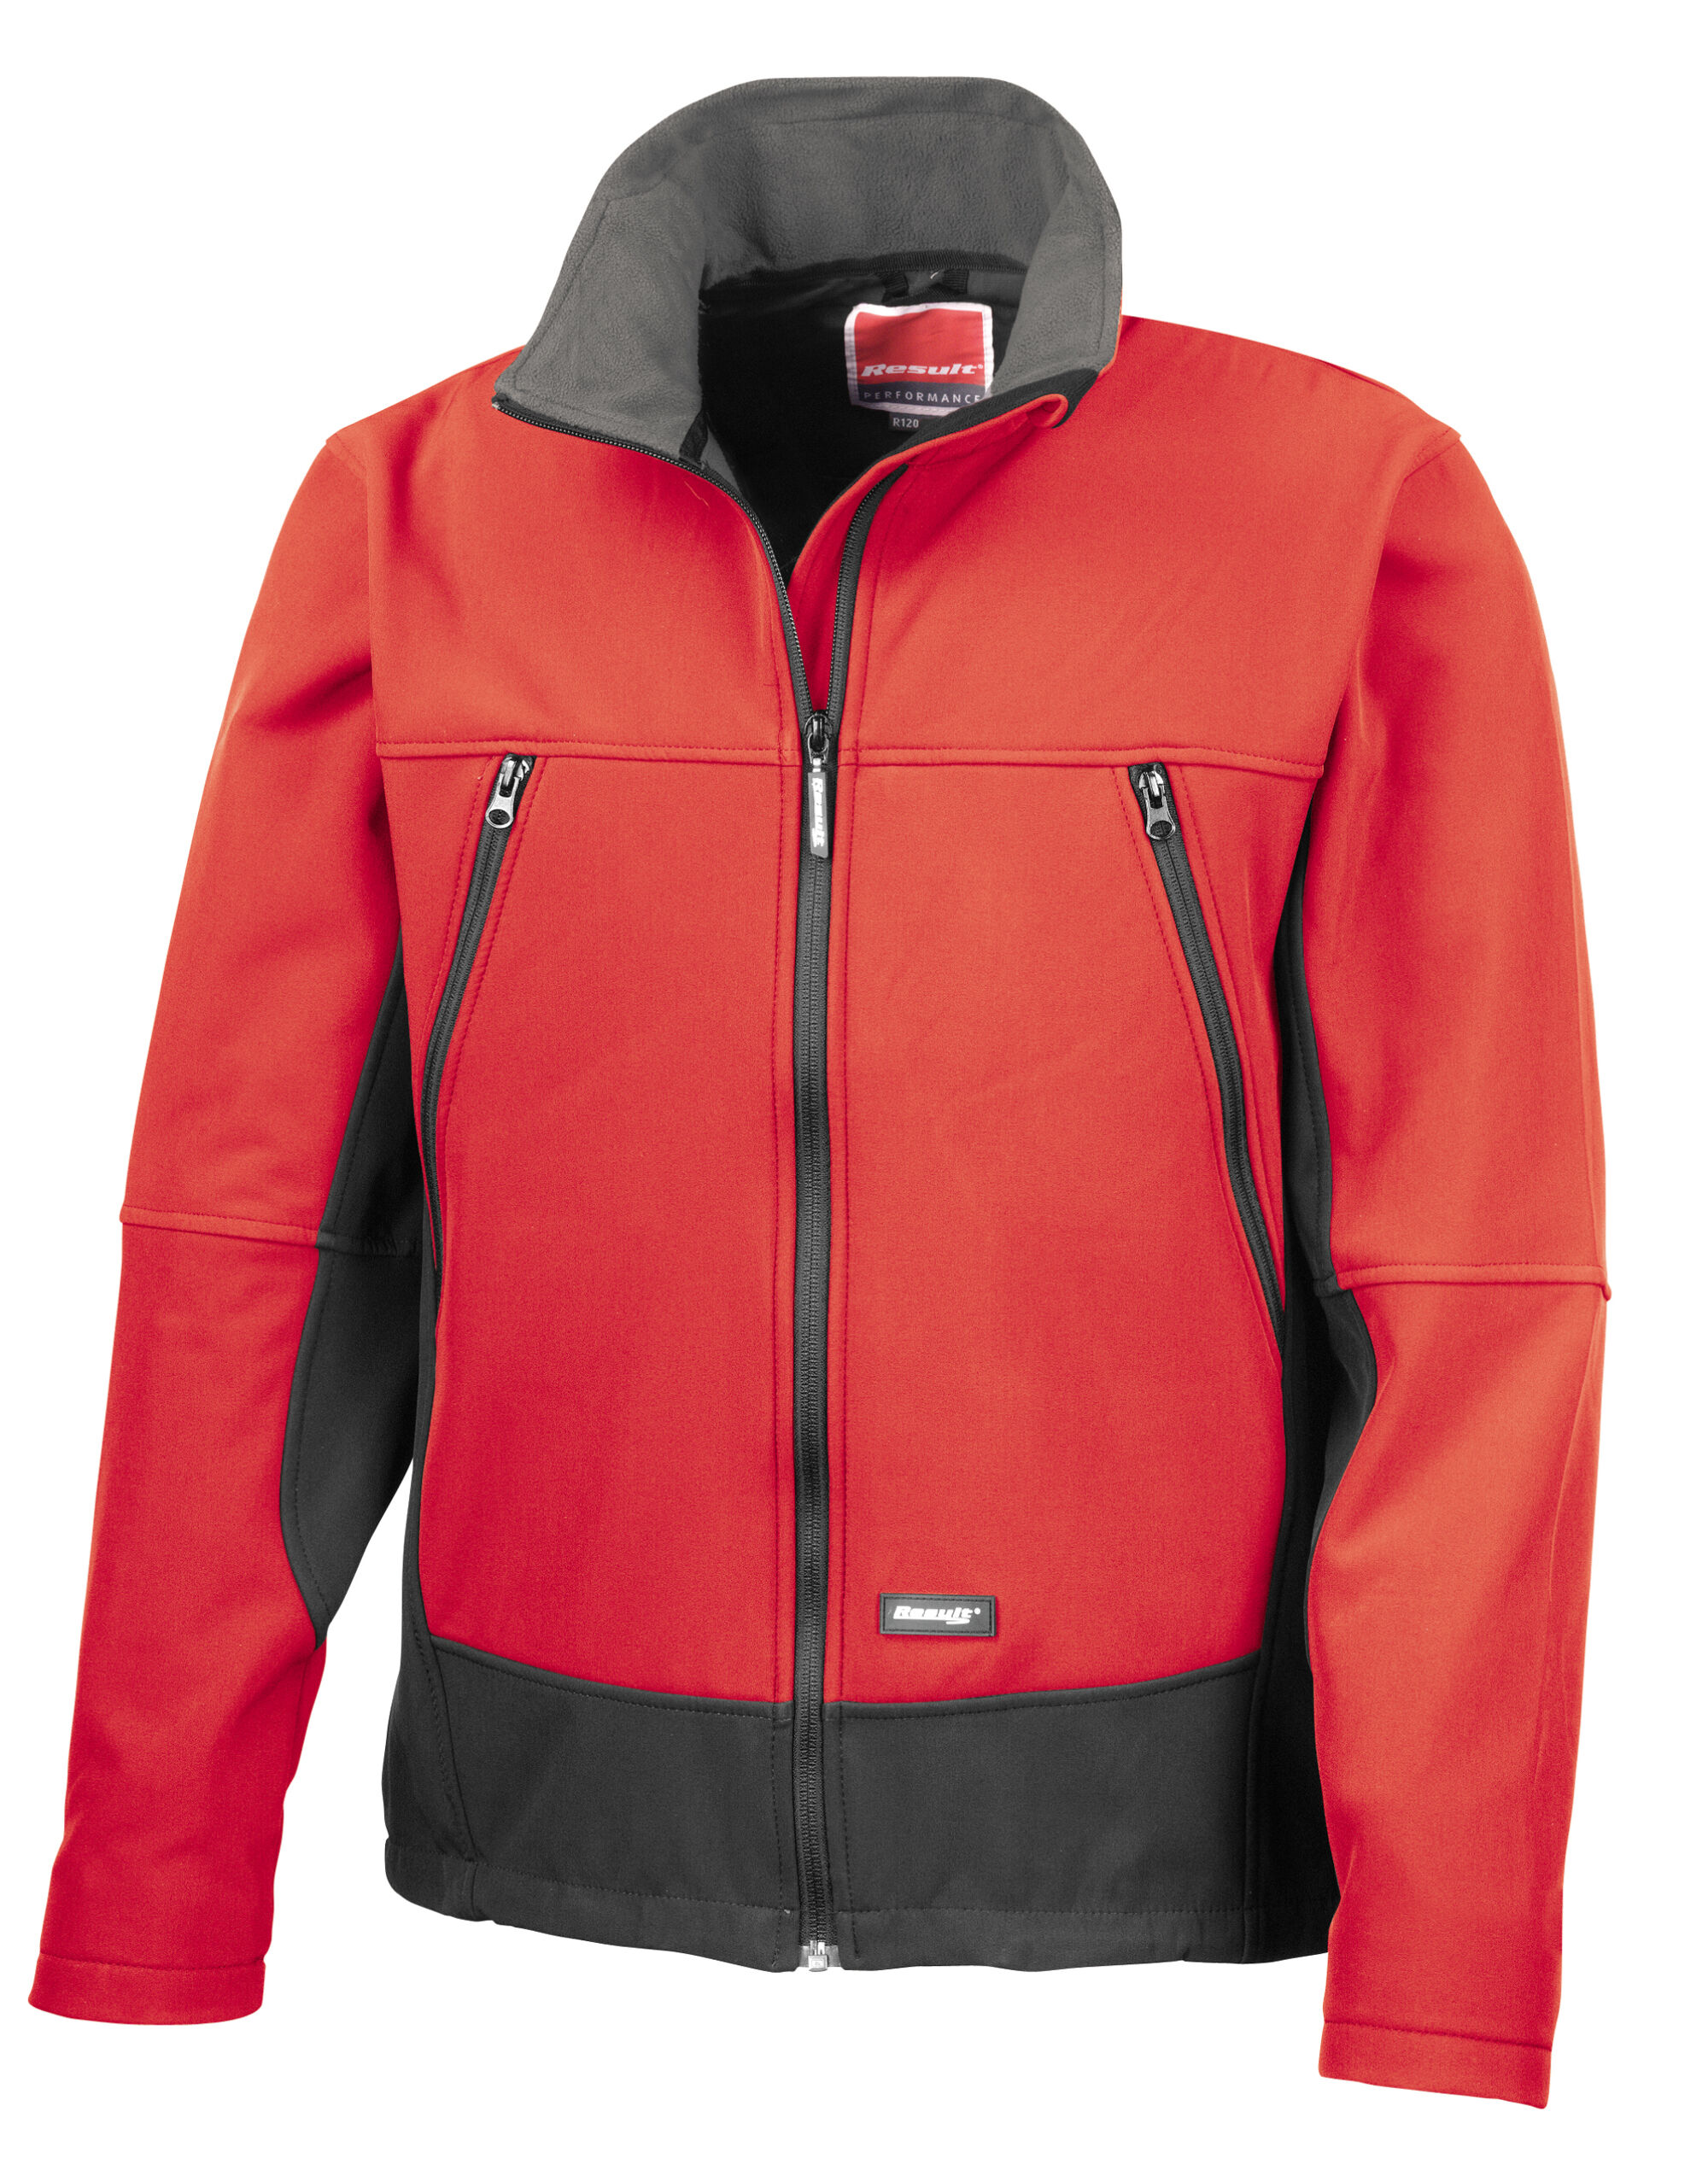 Result Soft Shell Activity Jacket